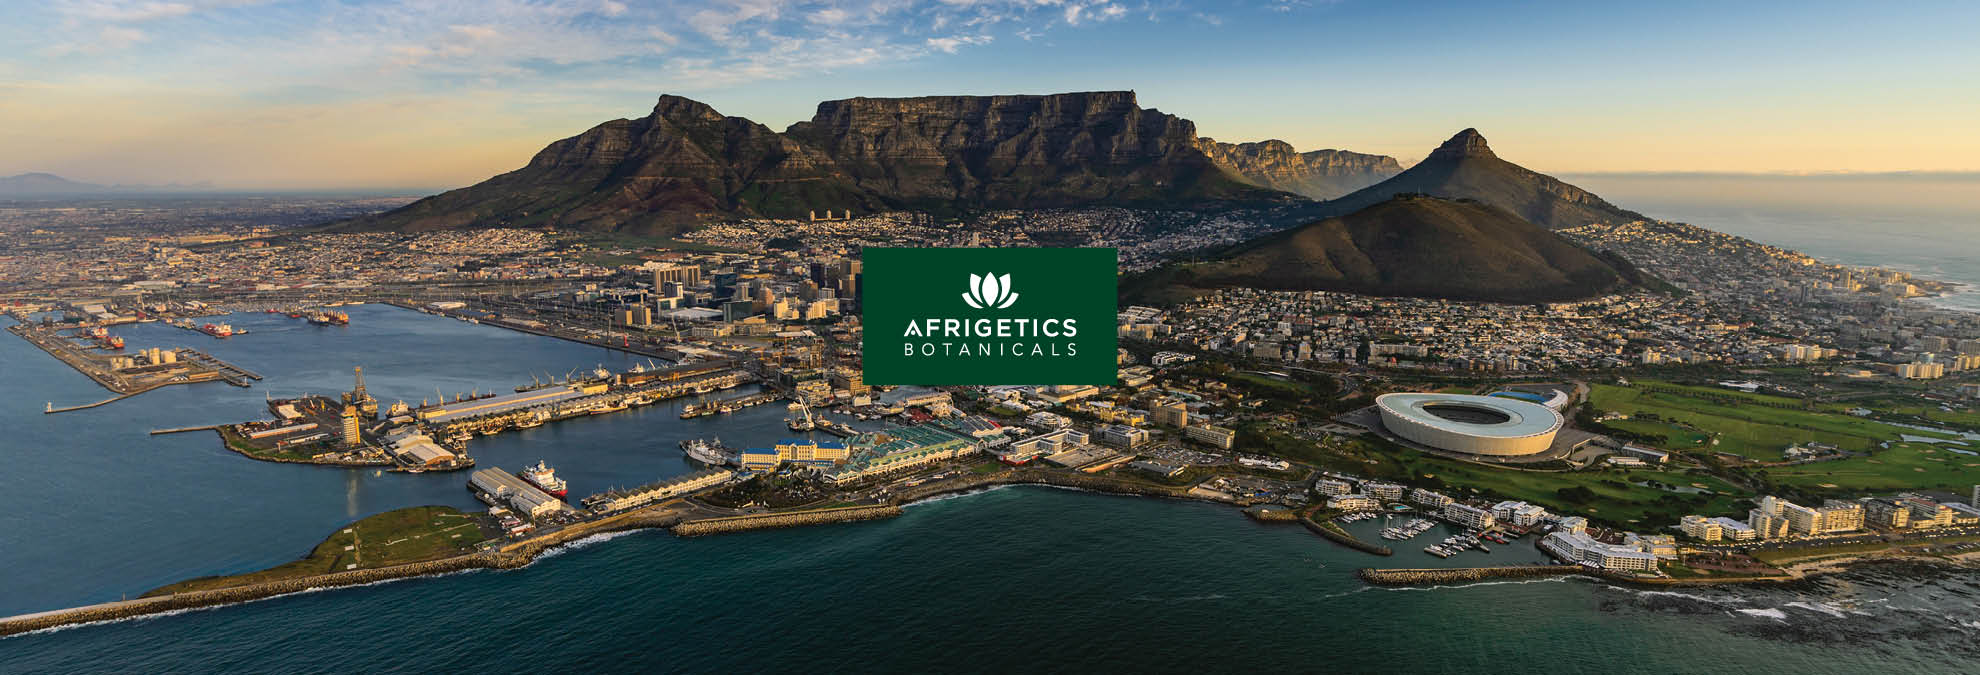 afrigetics-botanicals-about-logistics-cape-town-south-africa-harbour-2